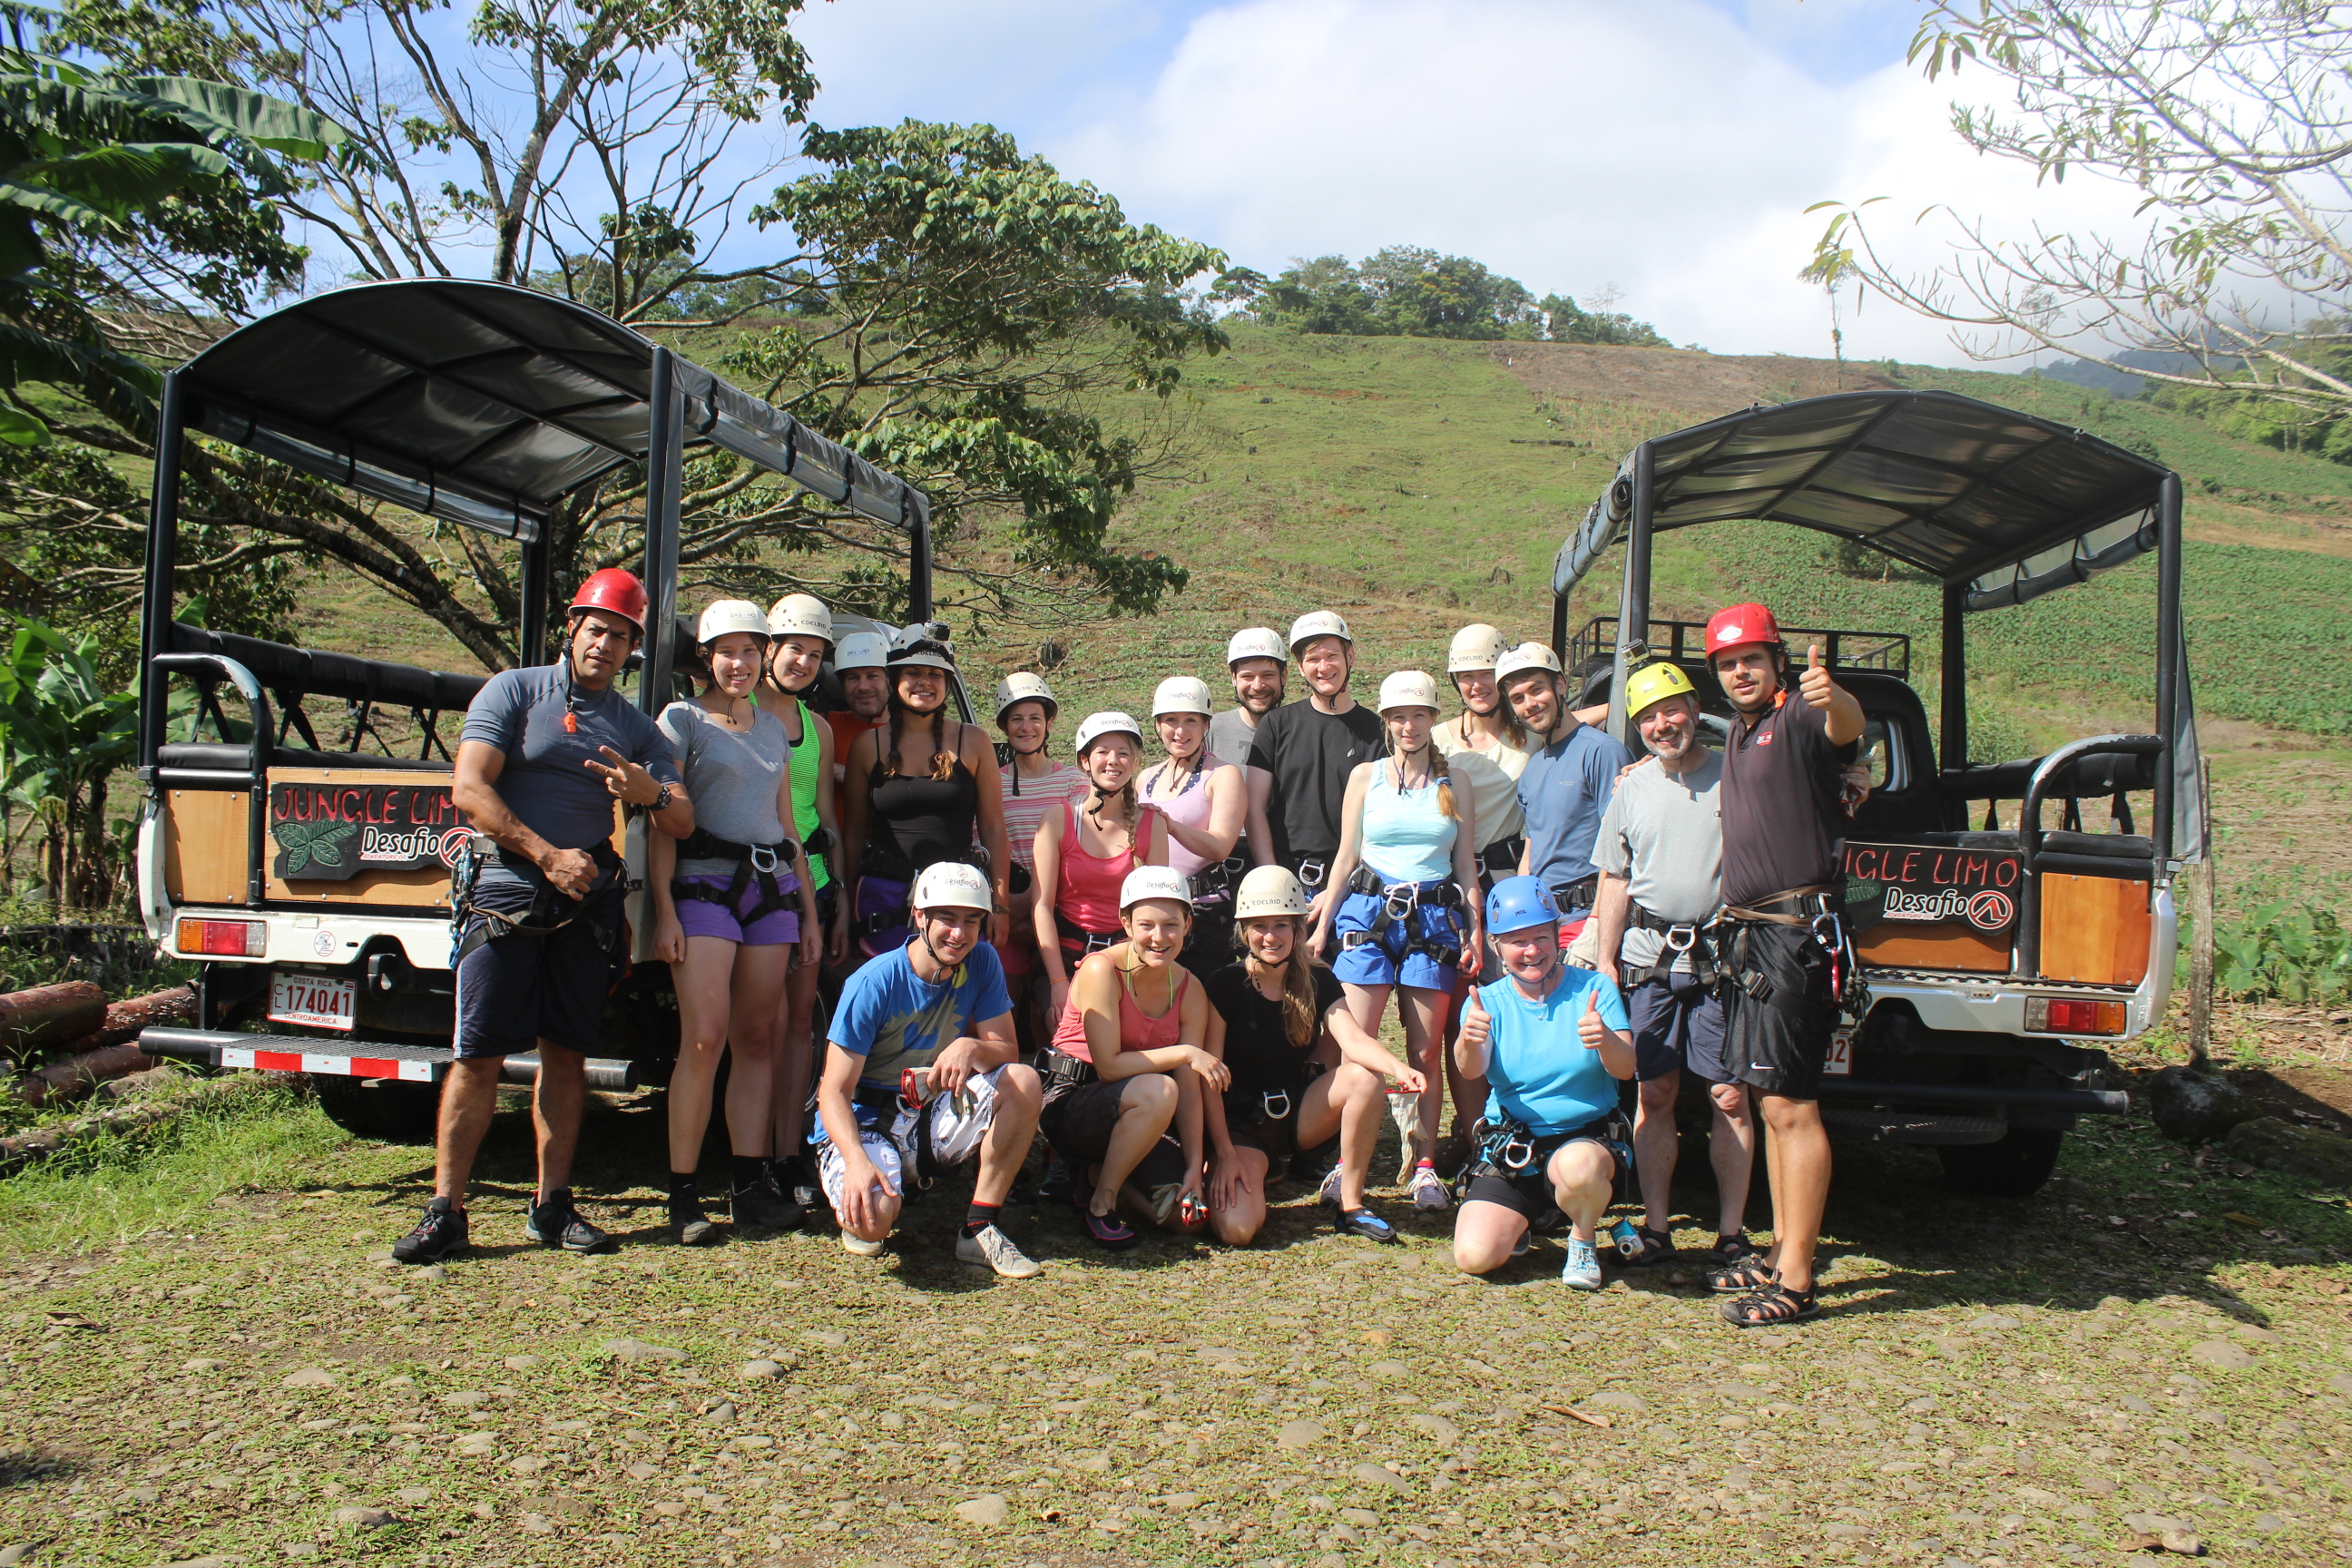 Meet new friends canyoning and ziplining with Desafio in Costa Rica.